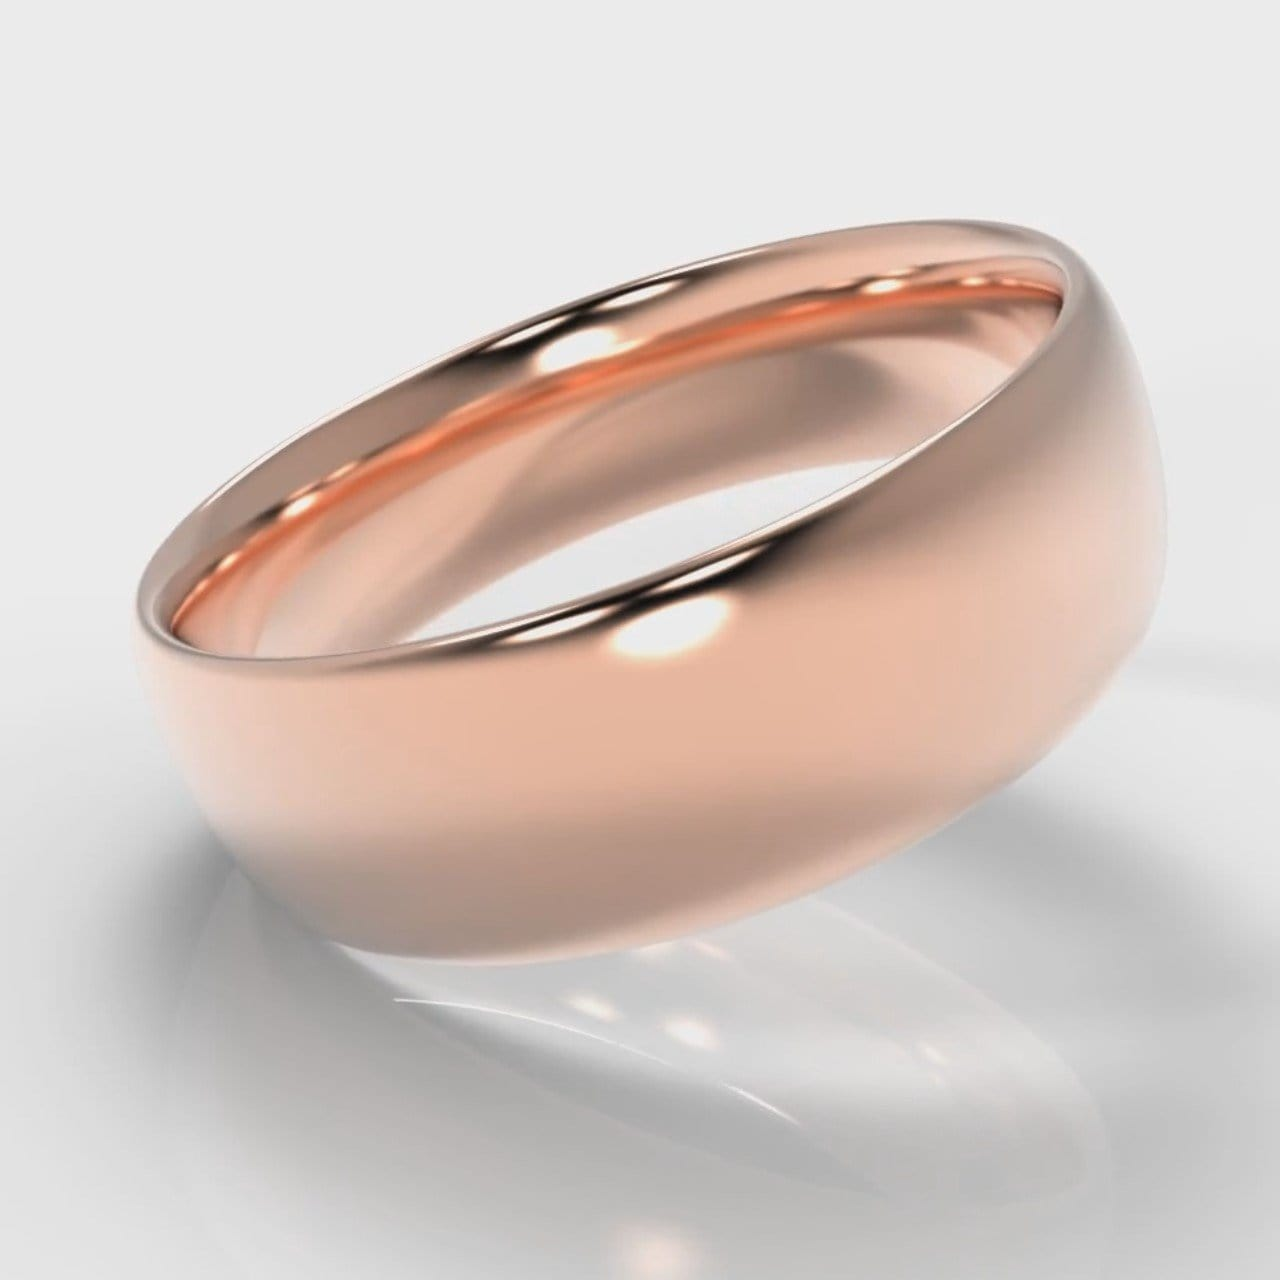 7mm Court Shaped Comfort Fit Wedding Ring - Rose Gold